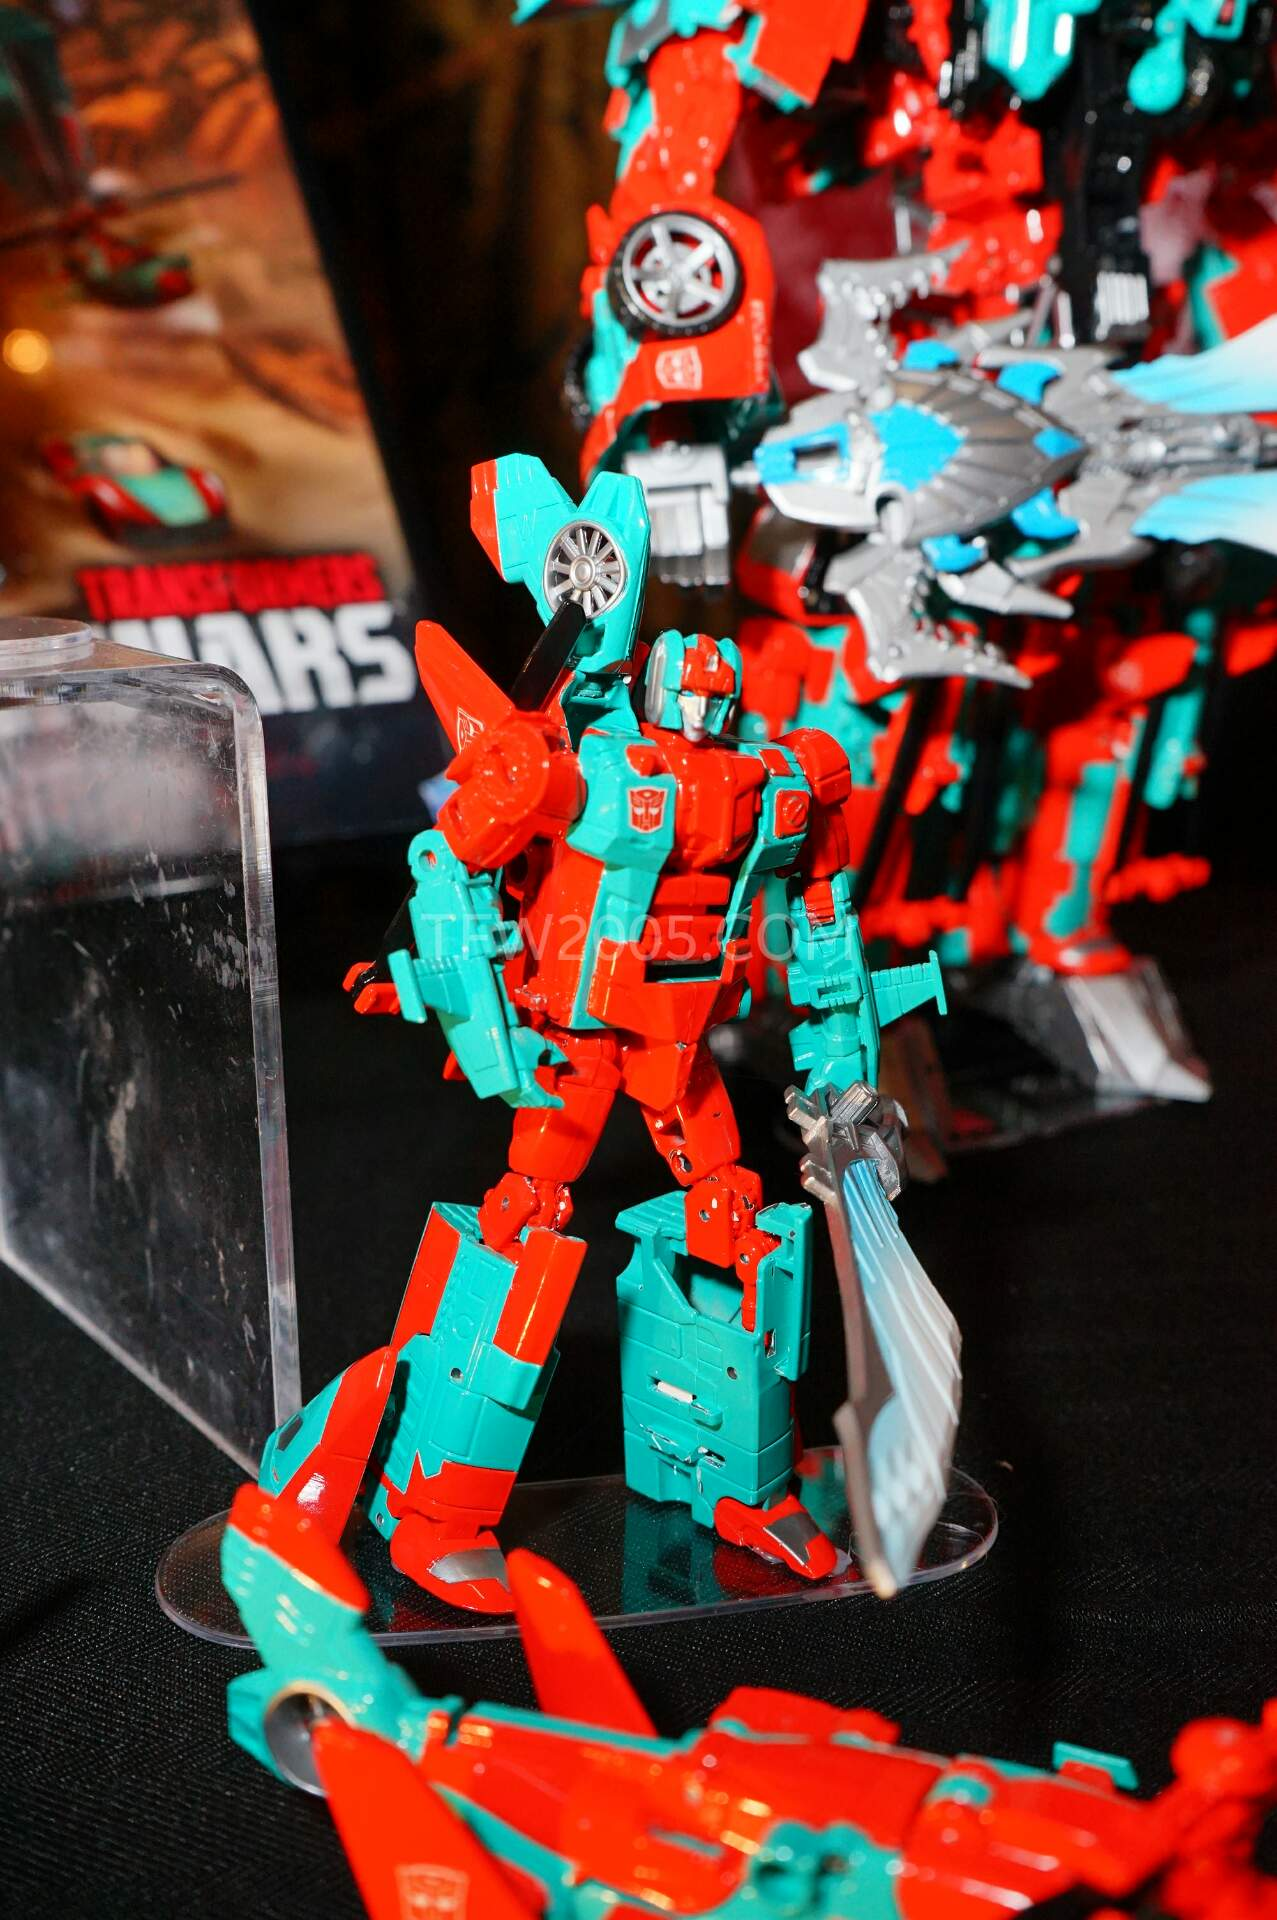 tfw2005 hasbro breakfast transformers from sdcc 2015